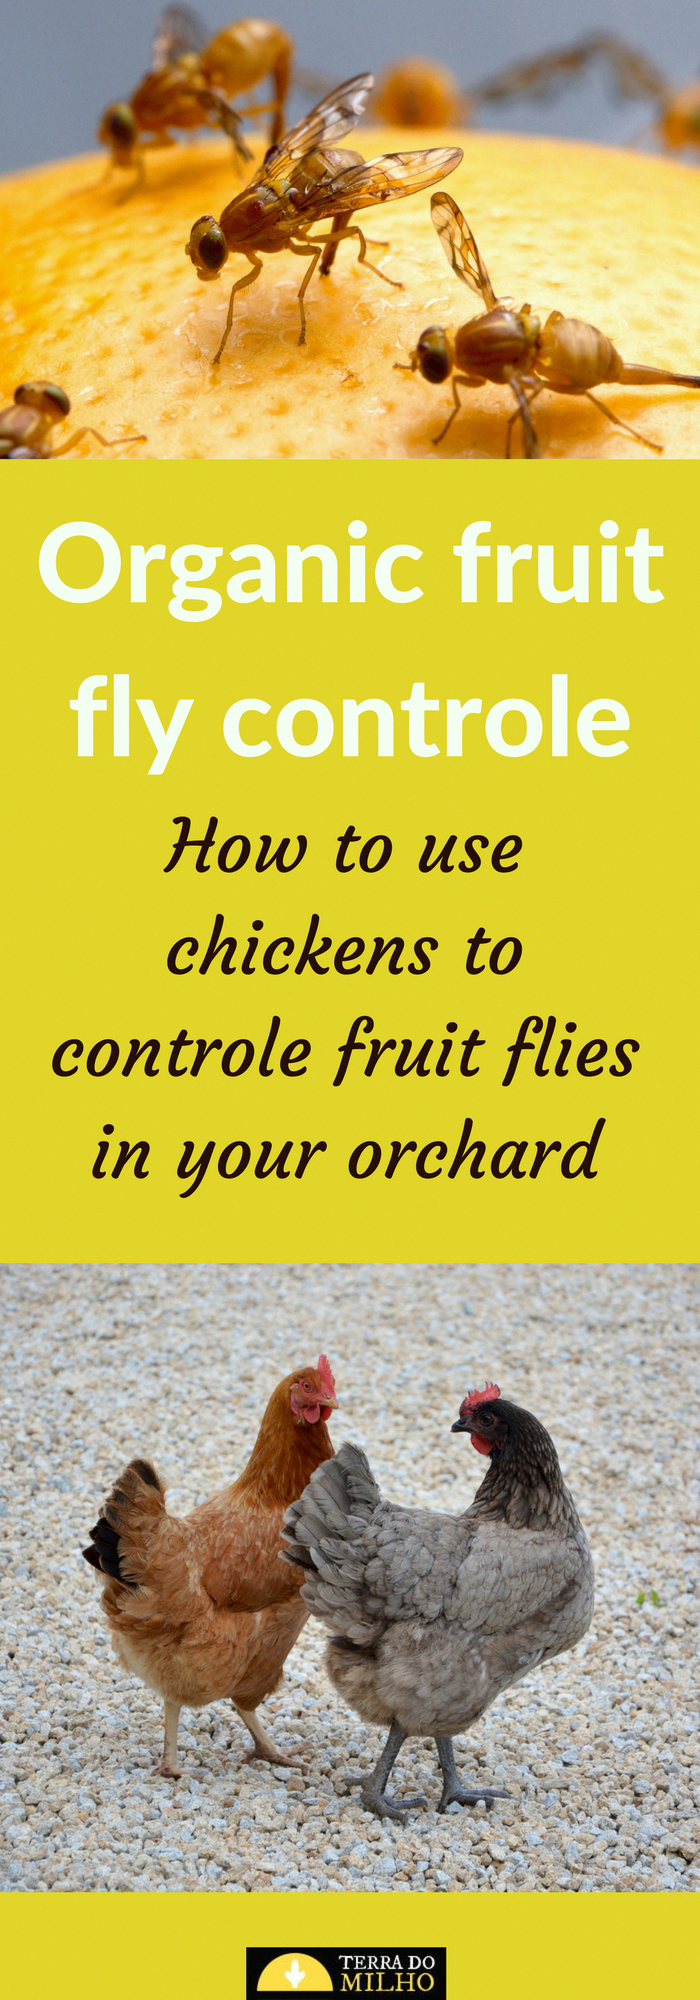 Organic fruit fly pest controle. How to use chickens to controle Mediterranean fruit flies (medfly) in your Orchard. fruit fly pest controle. How to use chickens to controle Mediterranean fruit flies (medfly) in your Orchard.